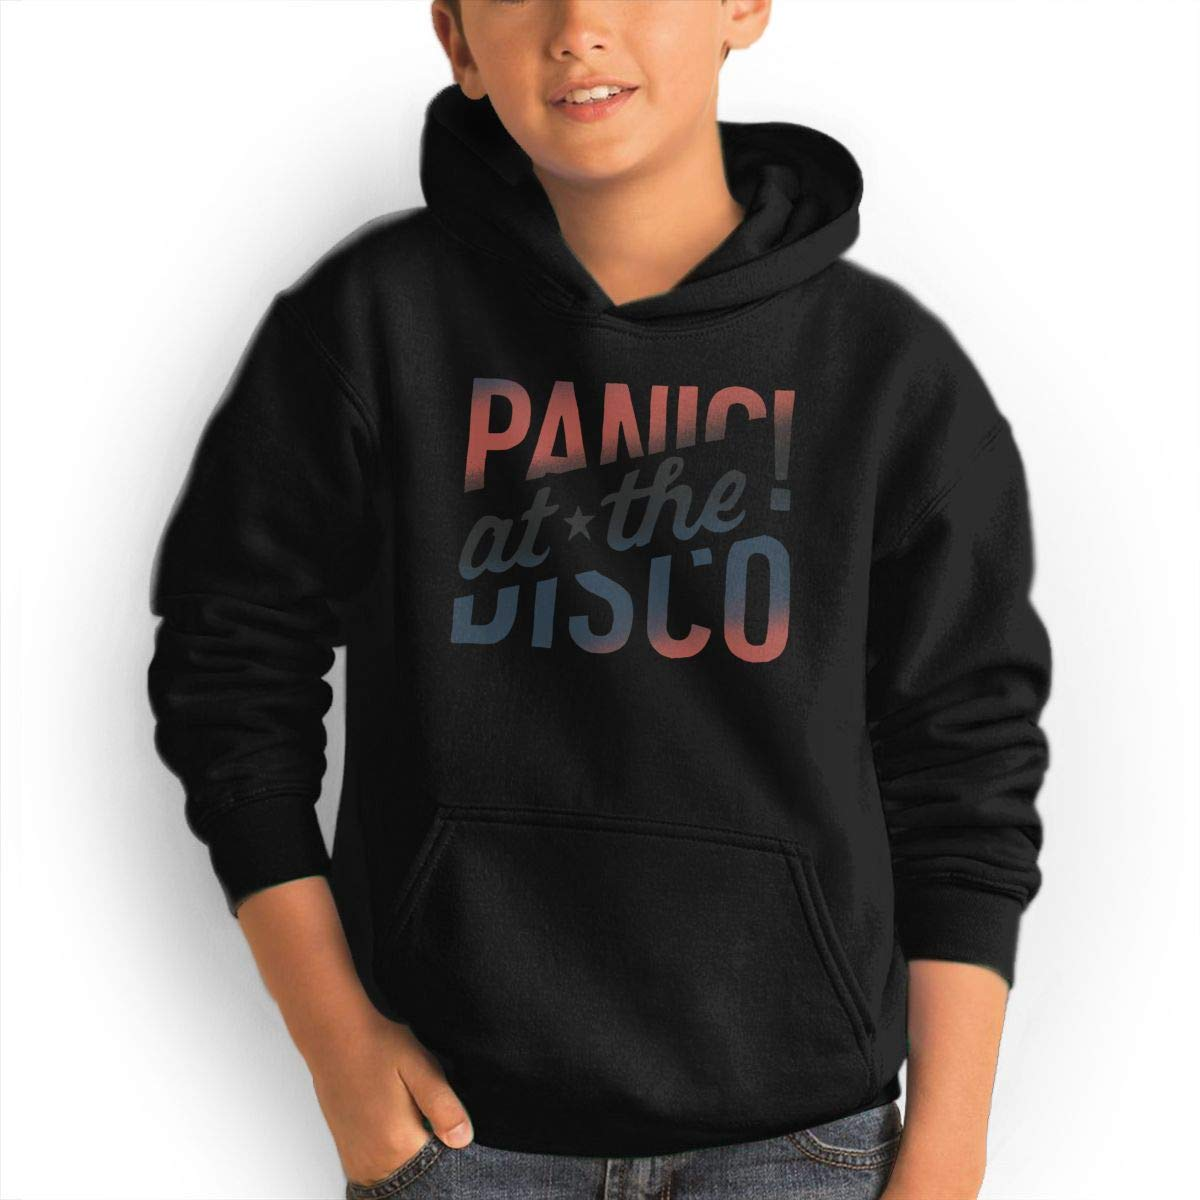 AlvinGuy Youth Boys and Girls Panic! at The Disco Logo Pockets Jackets Sweatshirts Hoodies Hooded by AlvinGuy